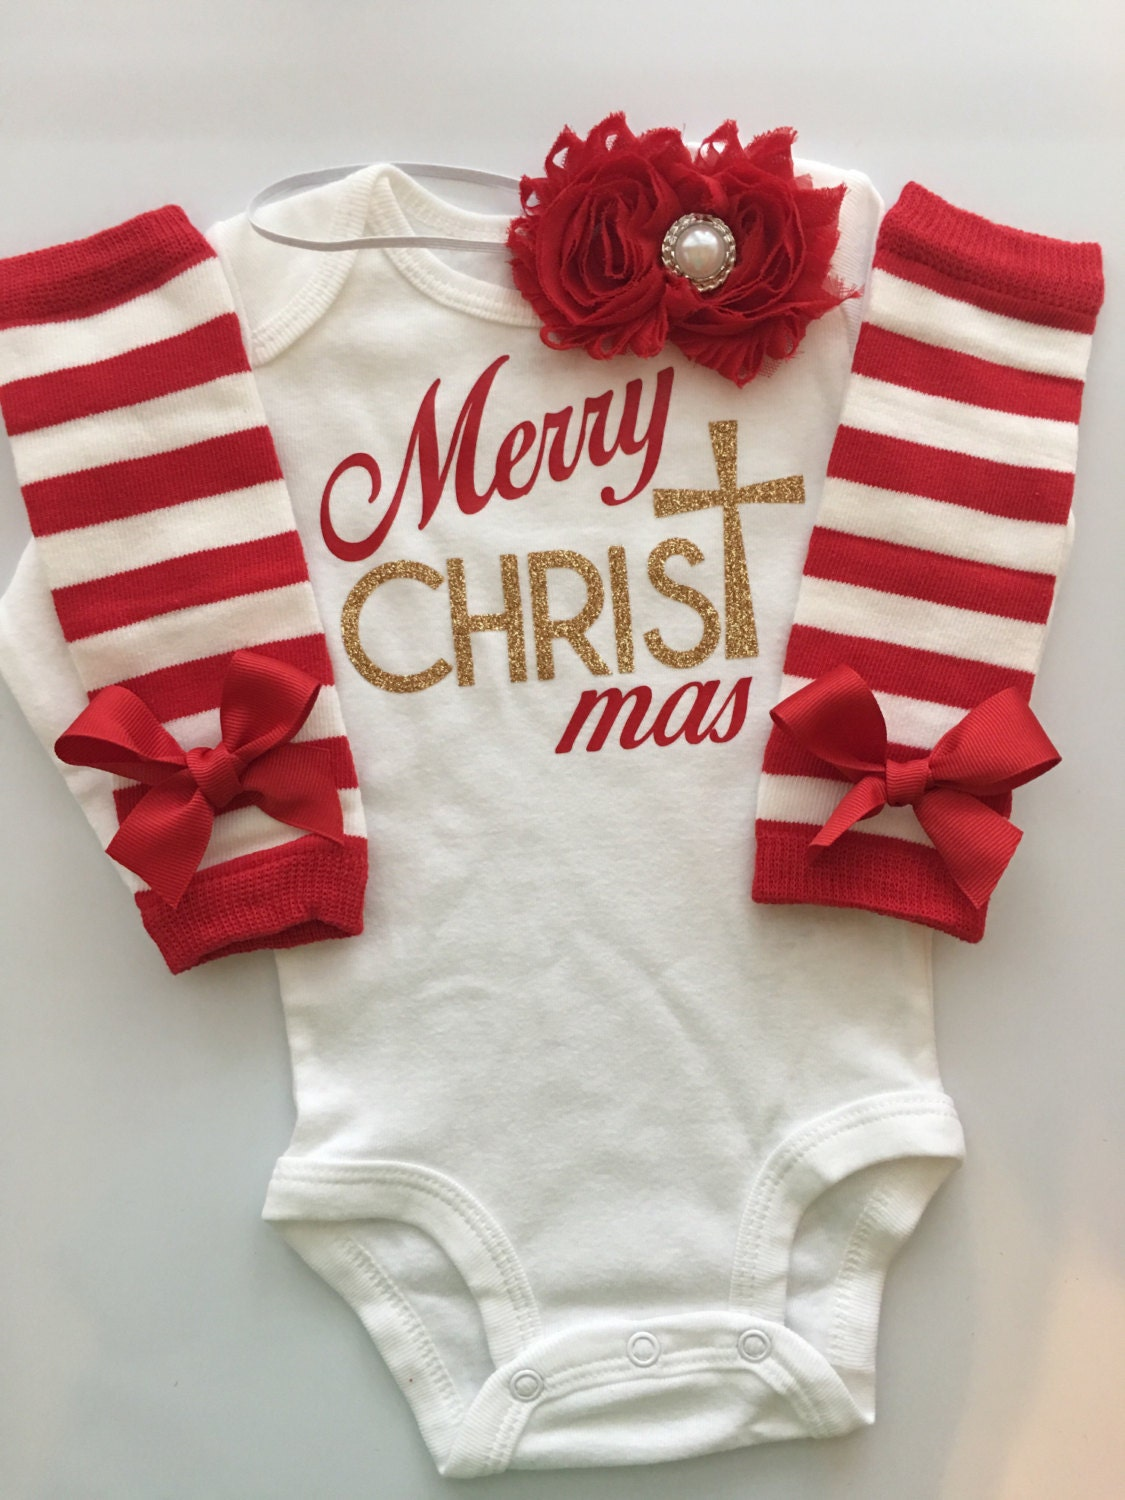 068726b09 ... 1st Christmas - baby girl church outfit - girl's Christmas outfit - 3  piece set. gallery photo ...